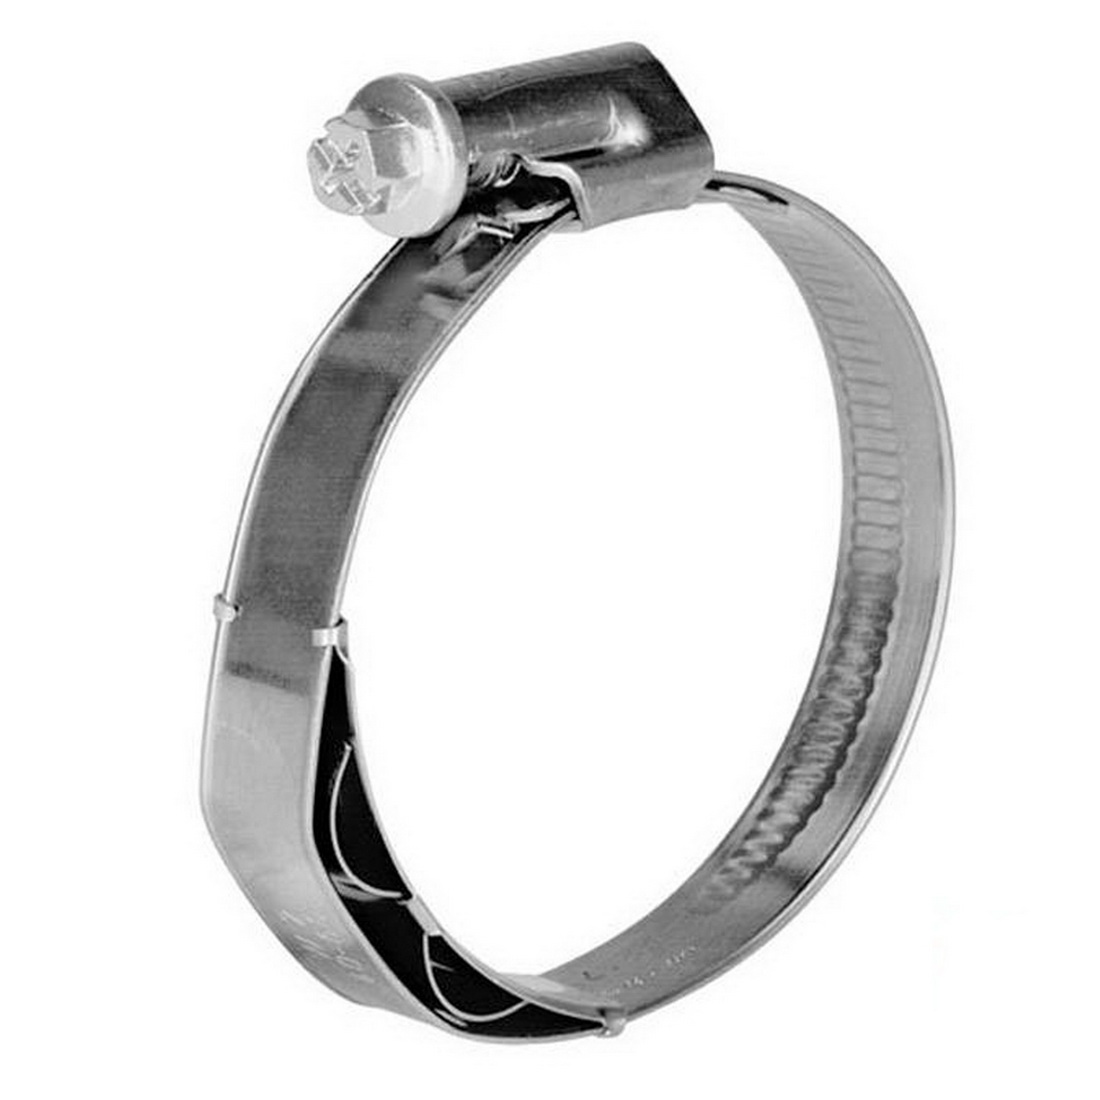 Hose Clamp SS 2 Pack  20-32mm 12mm Band